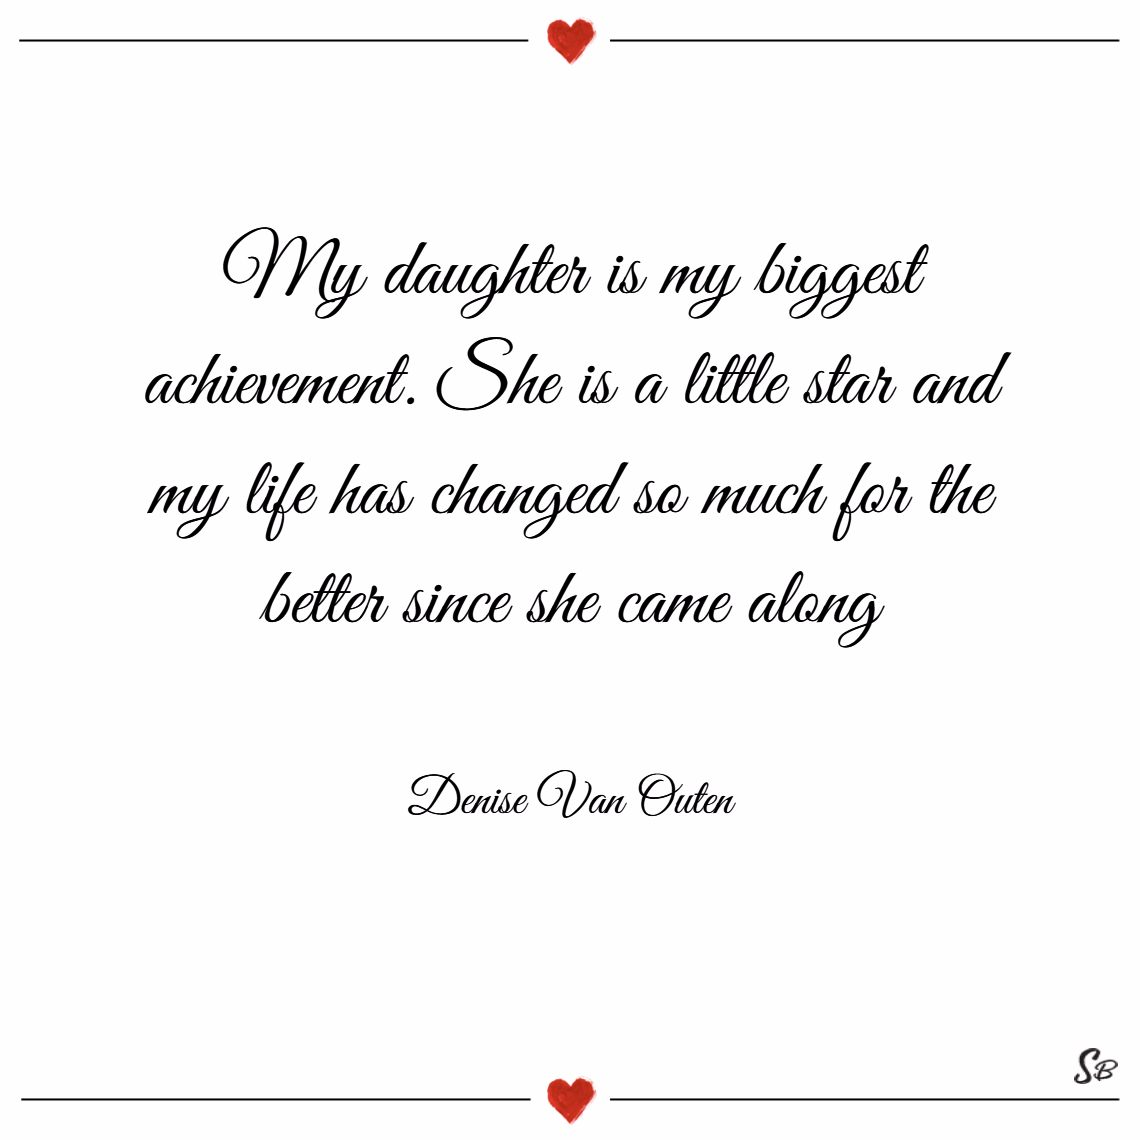 My daughter is my biggest achievement. she is a little star and my life has changed so much for the better since she came along. – denise van outen